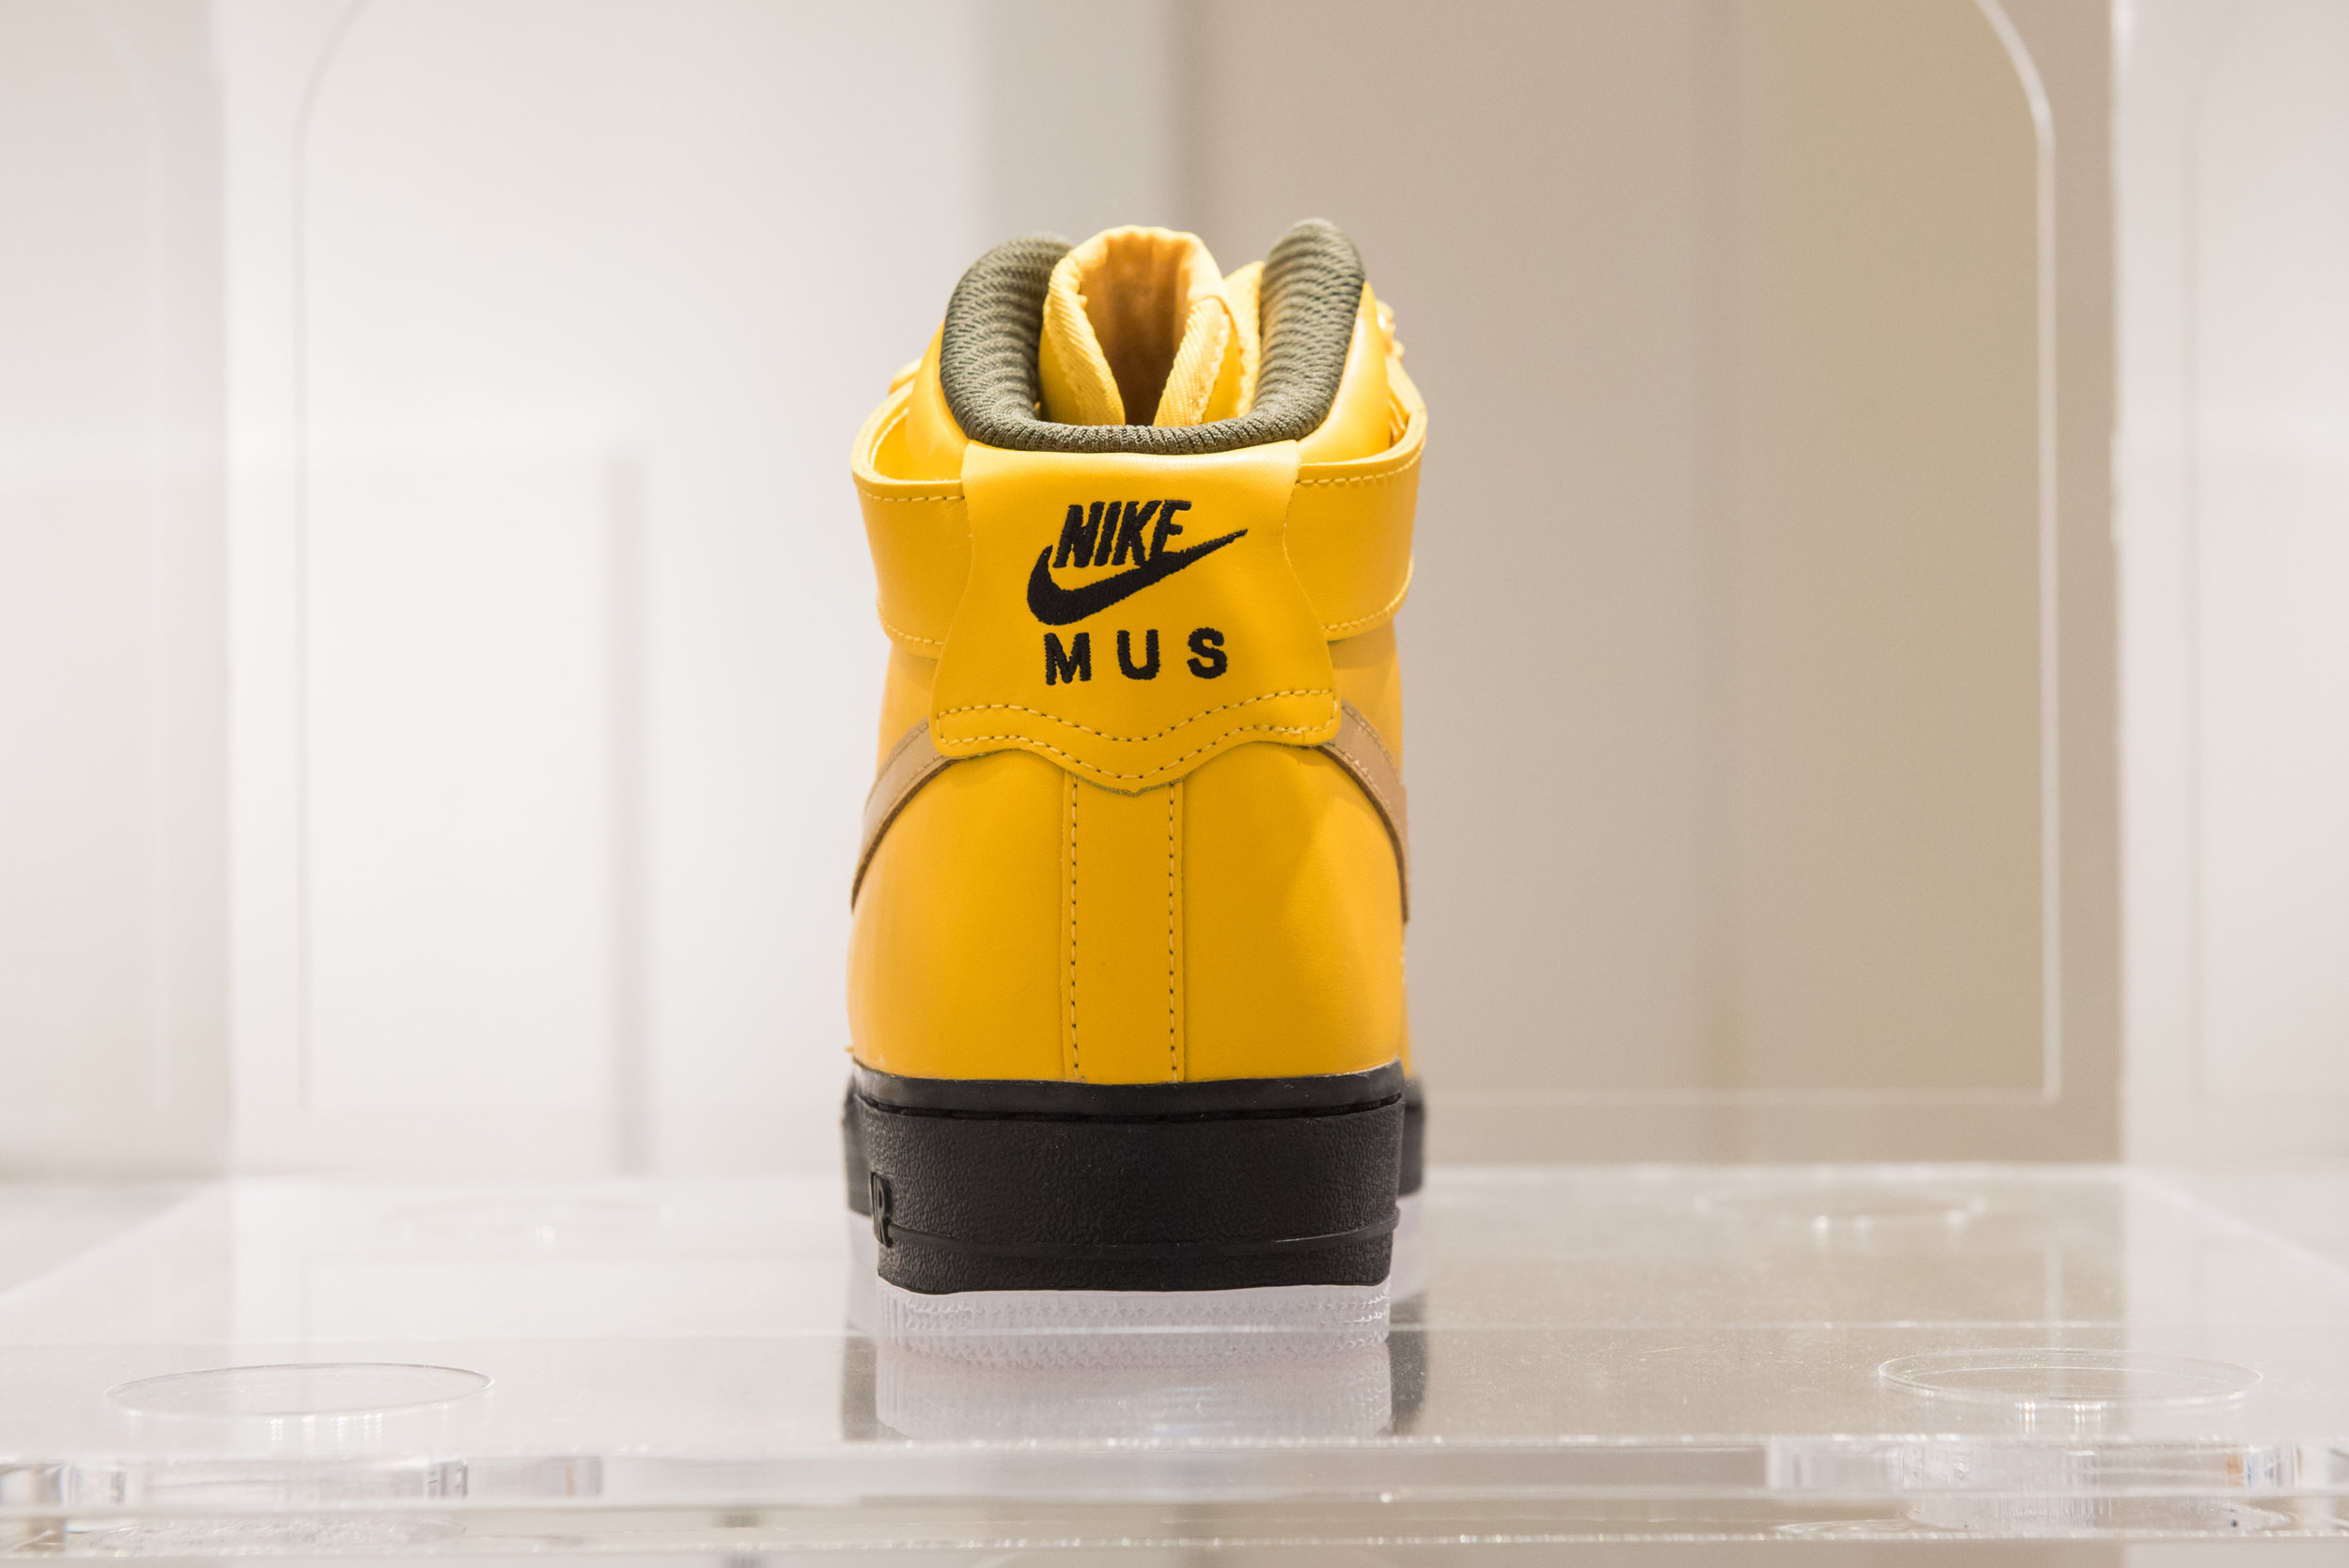 Nike ID #2 ,  Katonah Museum of Art, NY , Nike ID Tag customized Nike Air Force One mid-top shoes, 2018